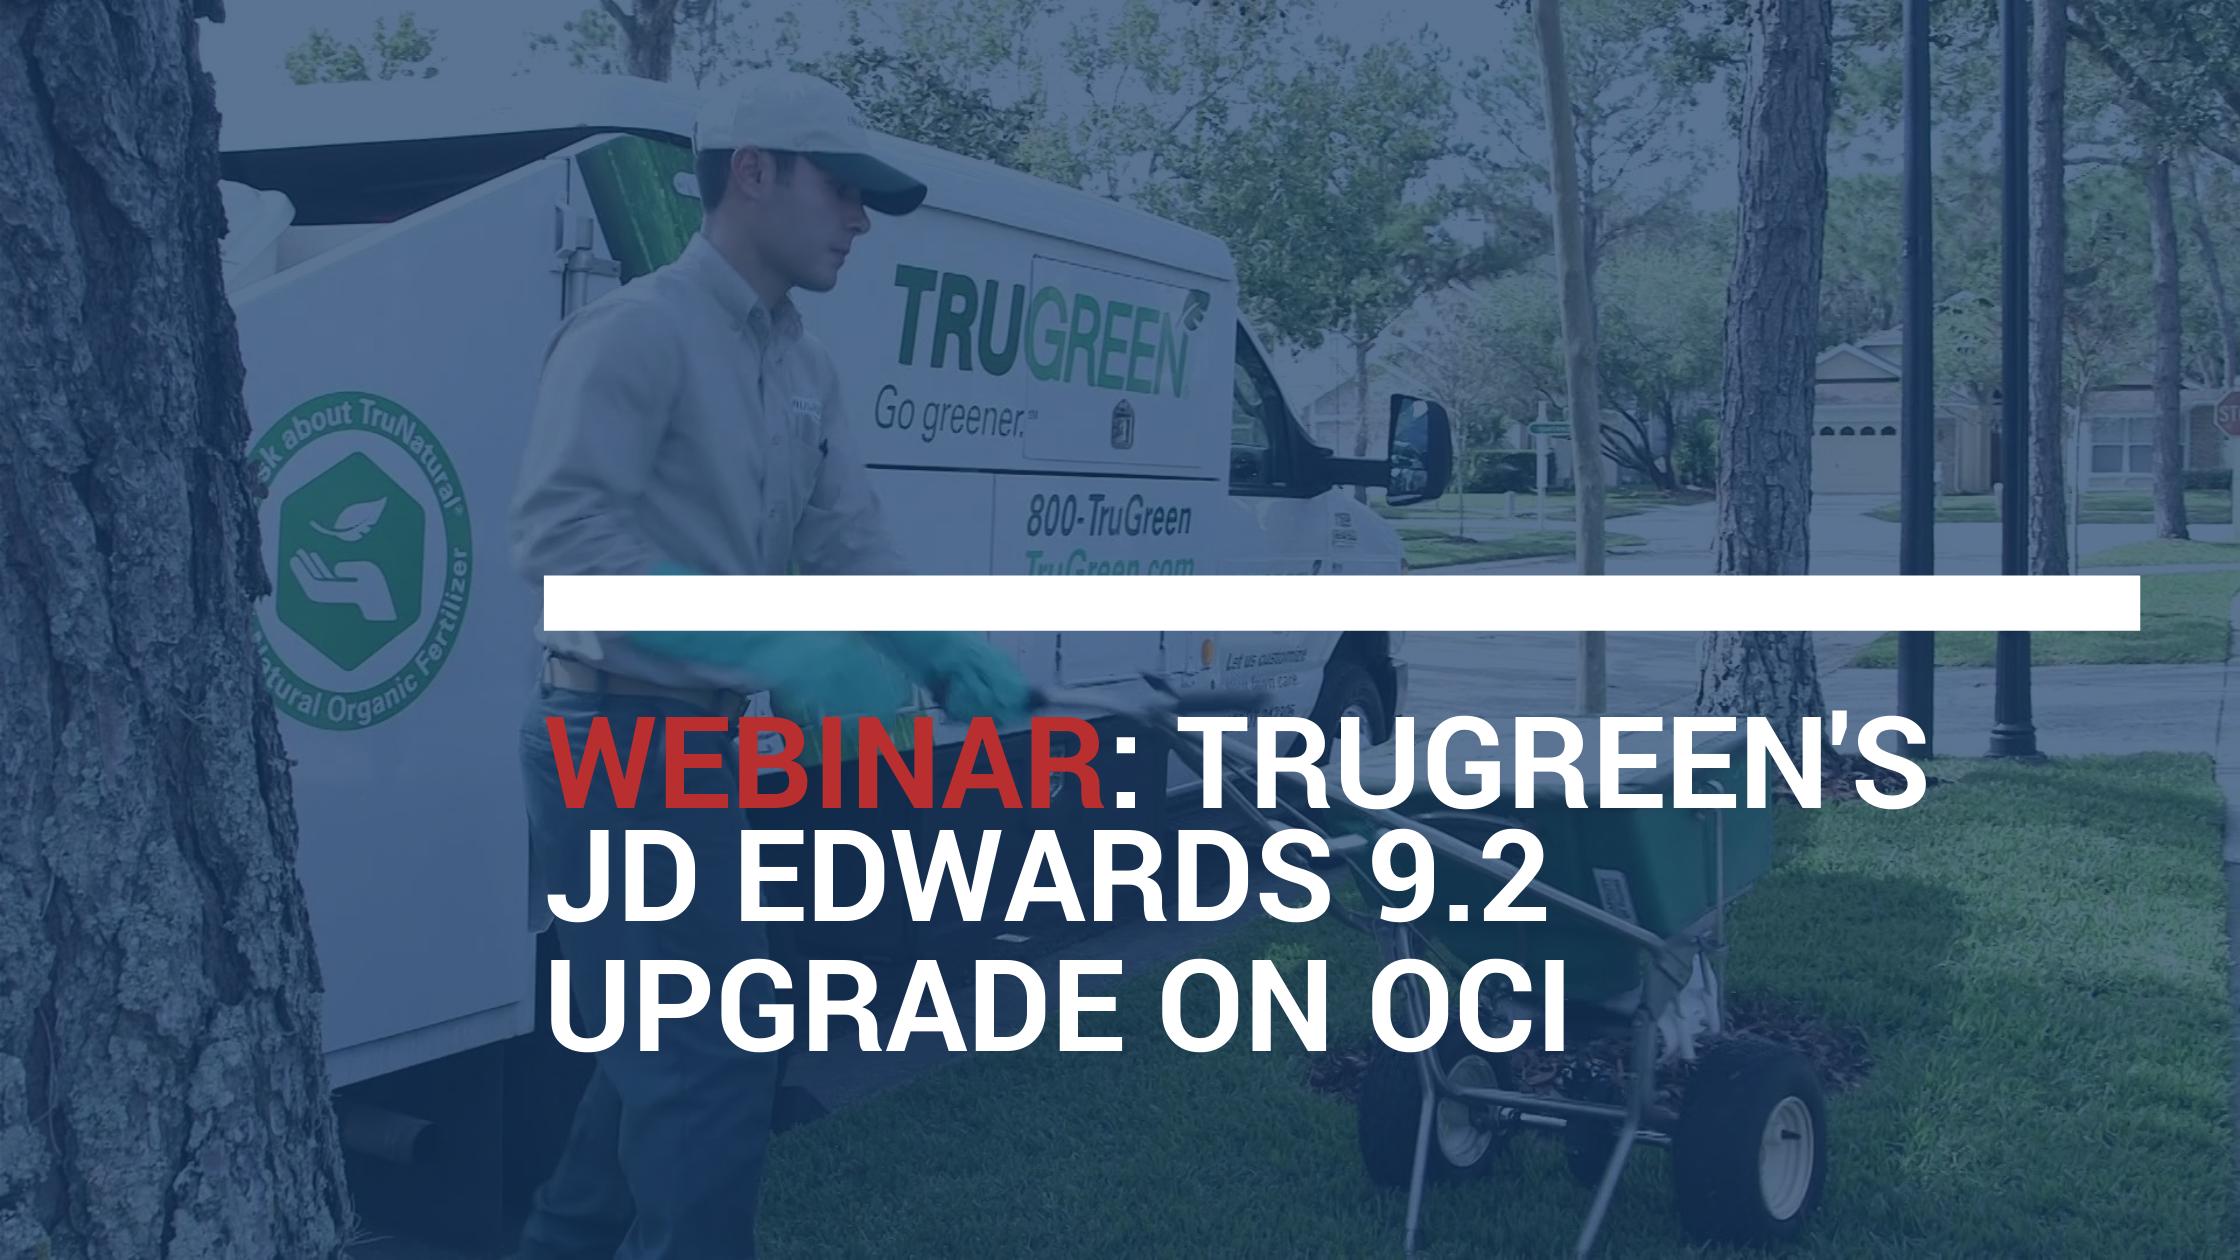 Webinar: TruGreen's JD Edwards 9.2 Upgrade on OCI by Velocity Technology Solutions